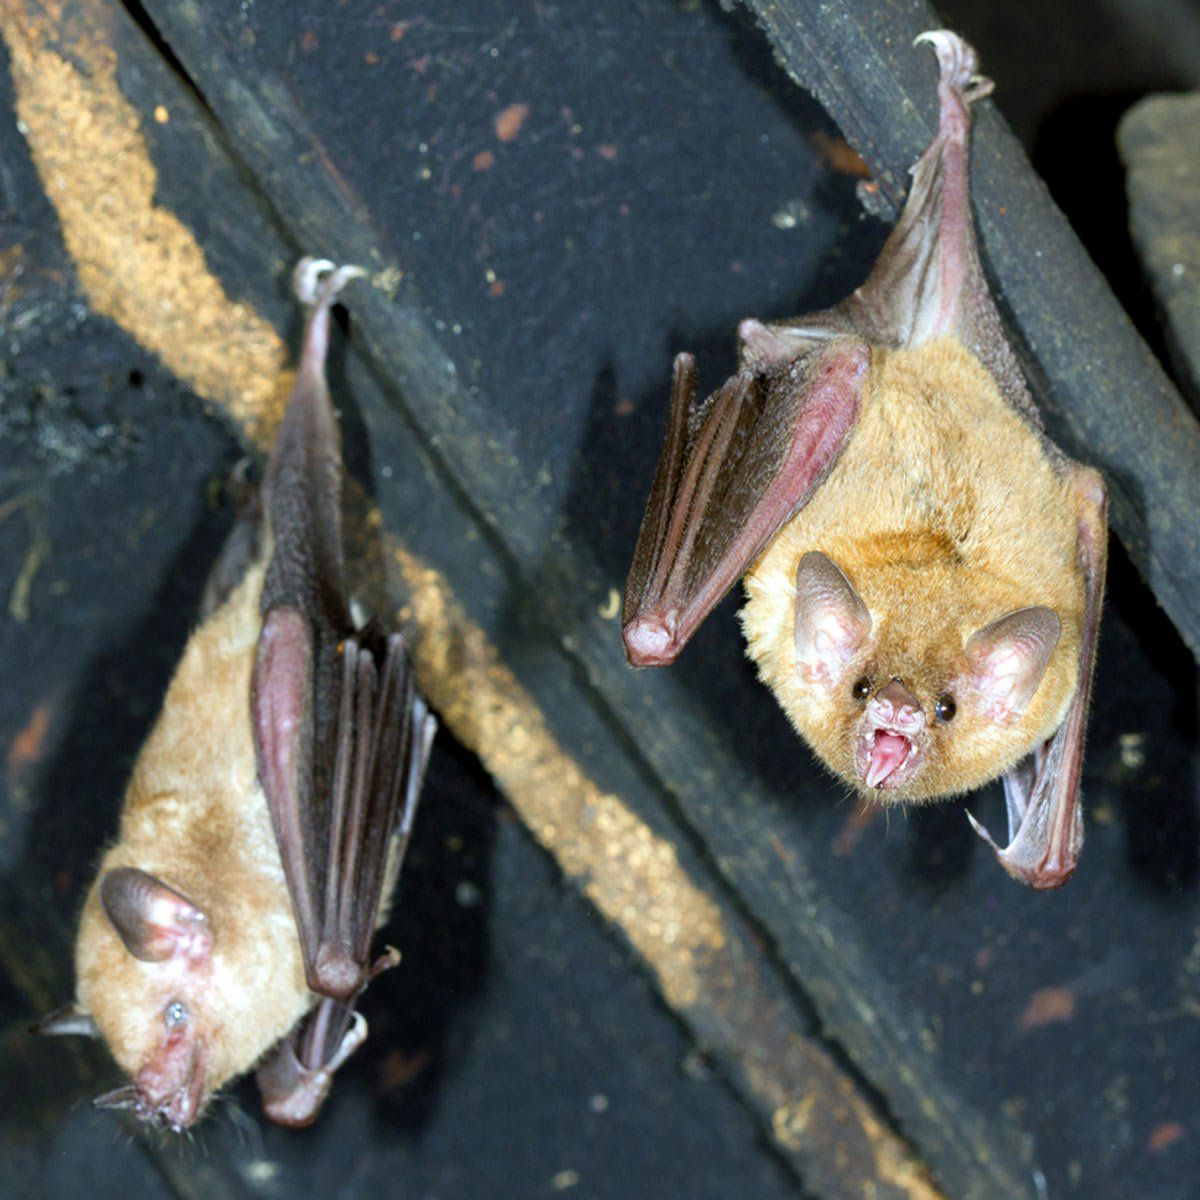 How To Get Rid Of Bats In Your Attic With Images Getting Rid Of Bats Pest Control Bats In Attic